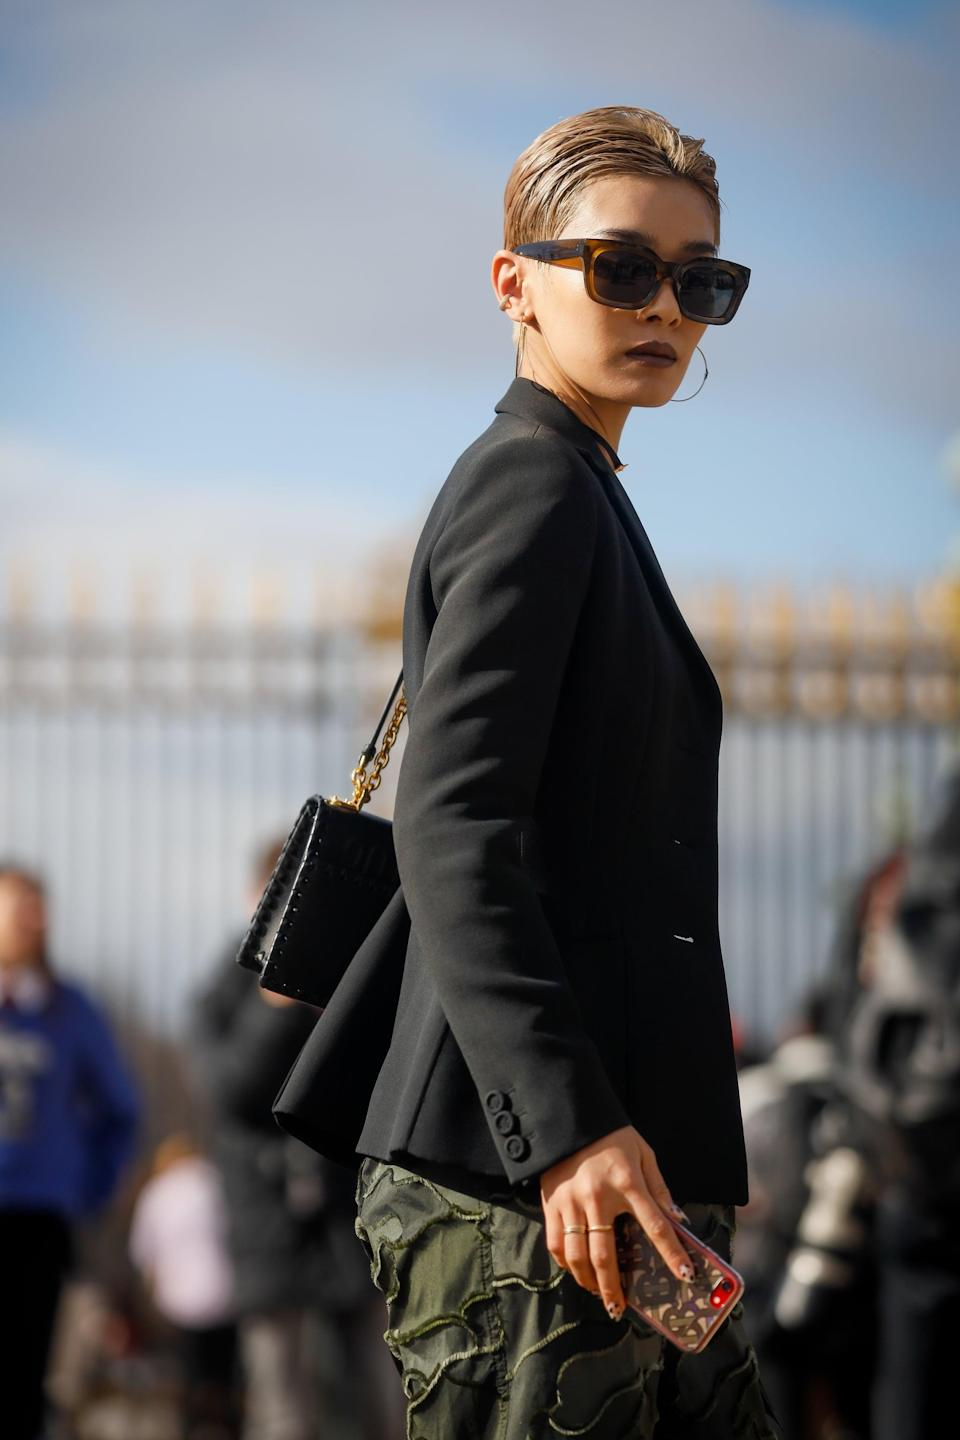 """<p>Pros are also predicting pixie cuts will be everywhere in the new year - specifically of the '60s mod persuasion. The reason: """"Short pixie cuts are easy to style,"""" Cleveland said.</p> <p><a href=""""https://www.instagram.com/tjspeck/?hl=en"""" class=""""link rapid-noclick-resp"""" rel=""""nofollow noopener"""" target=""""_blank"""" data-ylk=""""slk:Travis Speck"""">Travis Speck</a>, a hairstylist at the Sally Hershberger NoMad Salon in NYC, agreed: """"Anytime a client comes in and requests a pixie, I take my inspiration from Mia Farrow's classic pixie cut. Short hair is much more manageable and less high maintenance, but in order to help it grow out, you'll need to schedule routine trims.""""</p>"""